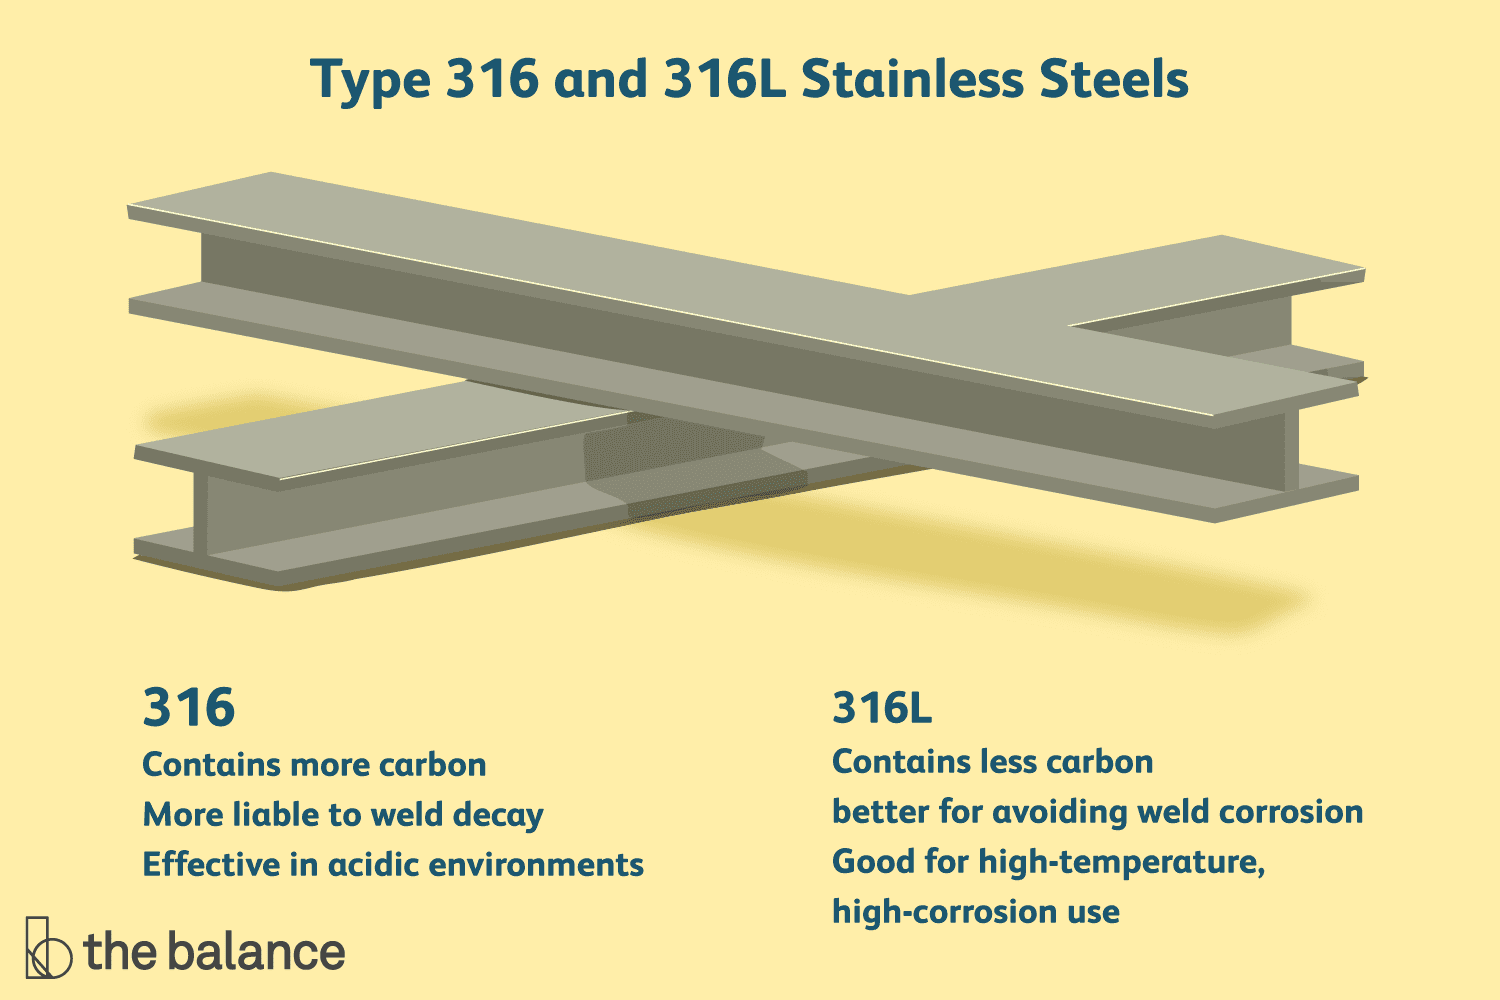 Type 316/316L Stainless Steels Explained